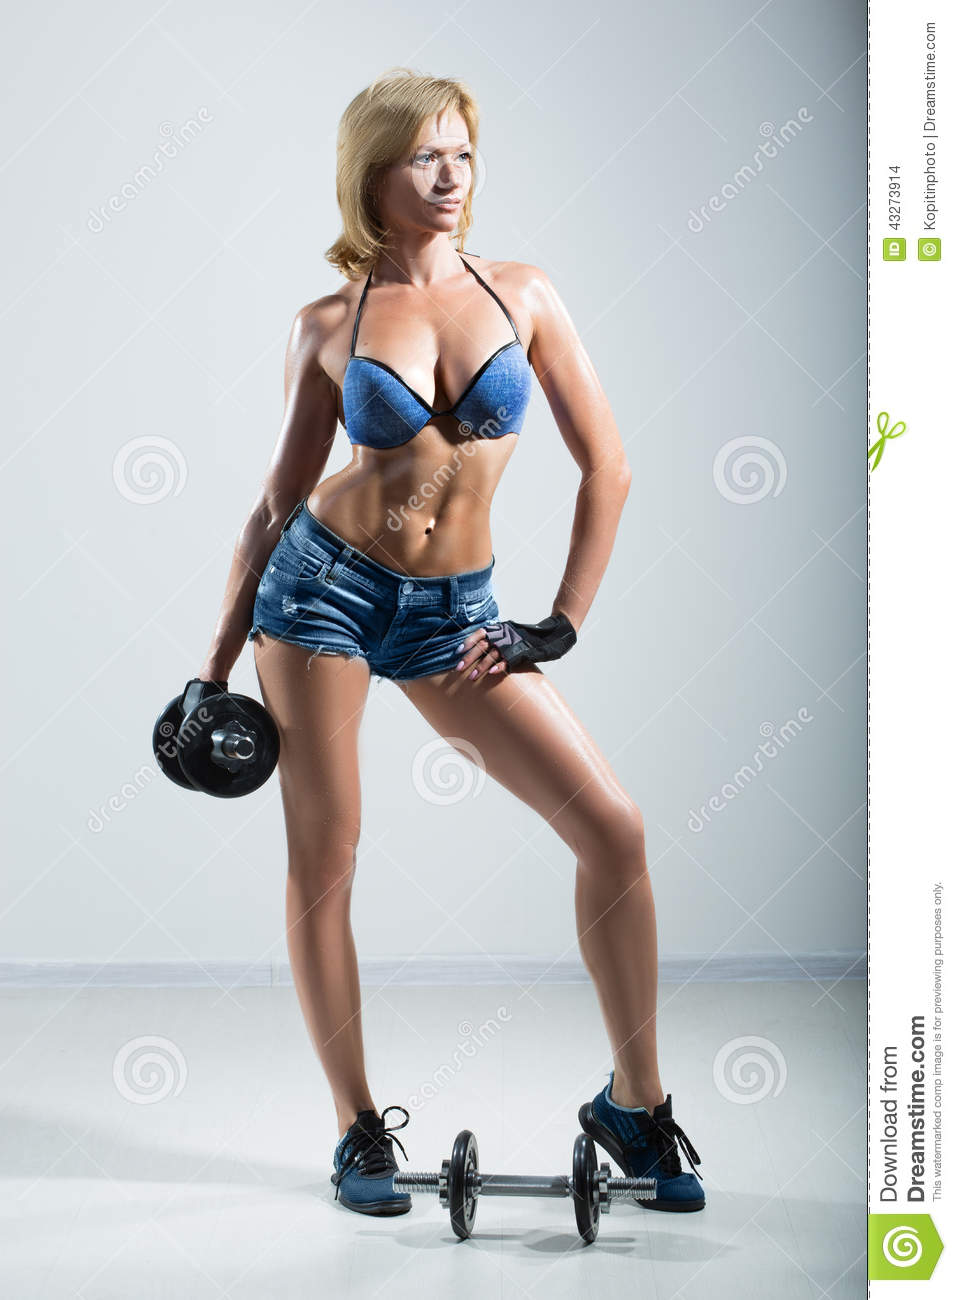 Athletic Woman Pumping Up Muscules With Dumbbells Stock